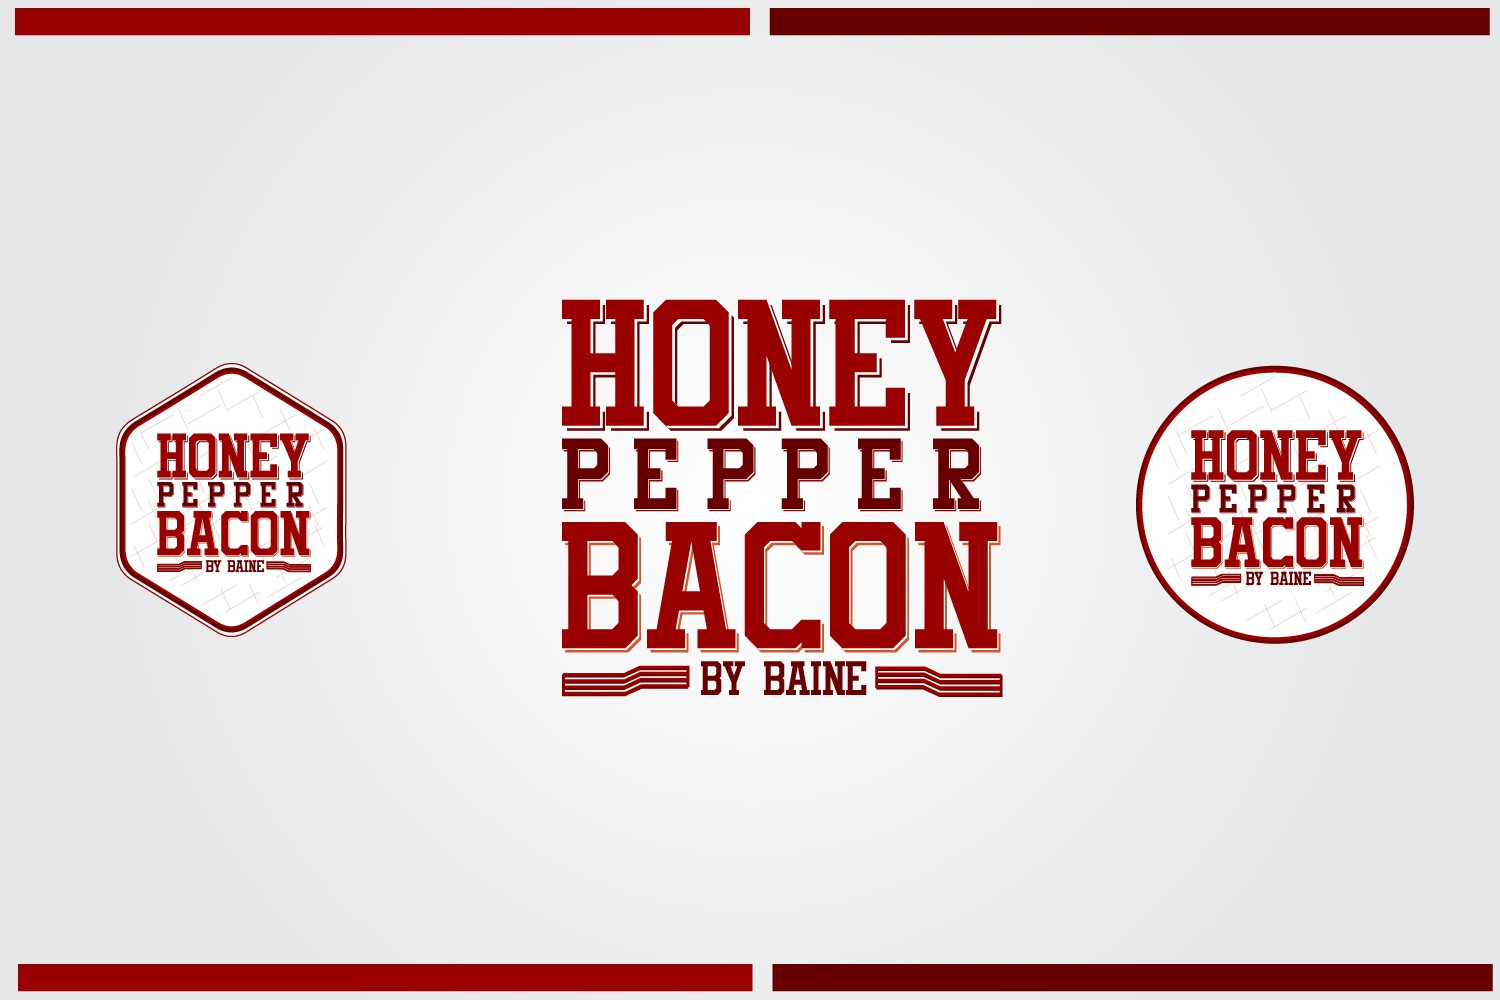 New logo wanted for Honey Pepper Bacon